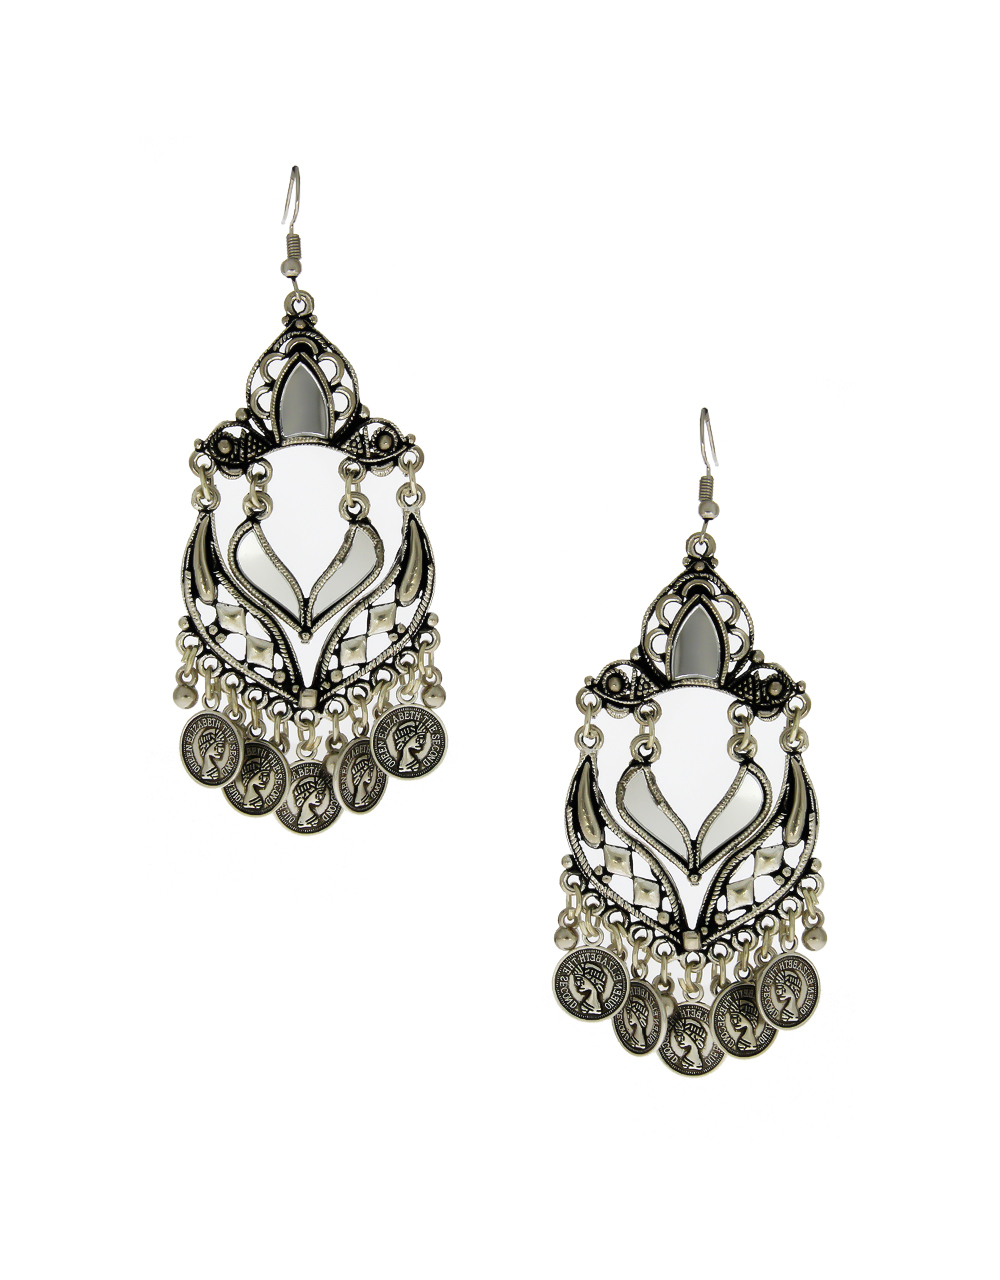 Adorable Oxidized Finish Styled With Coin Earrings For Girls